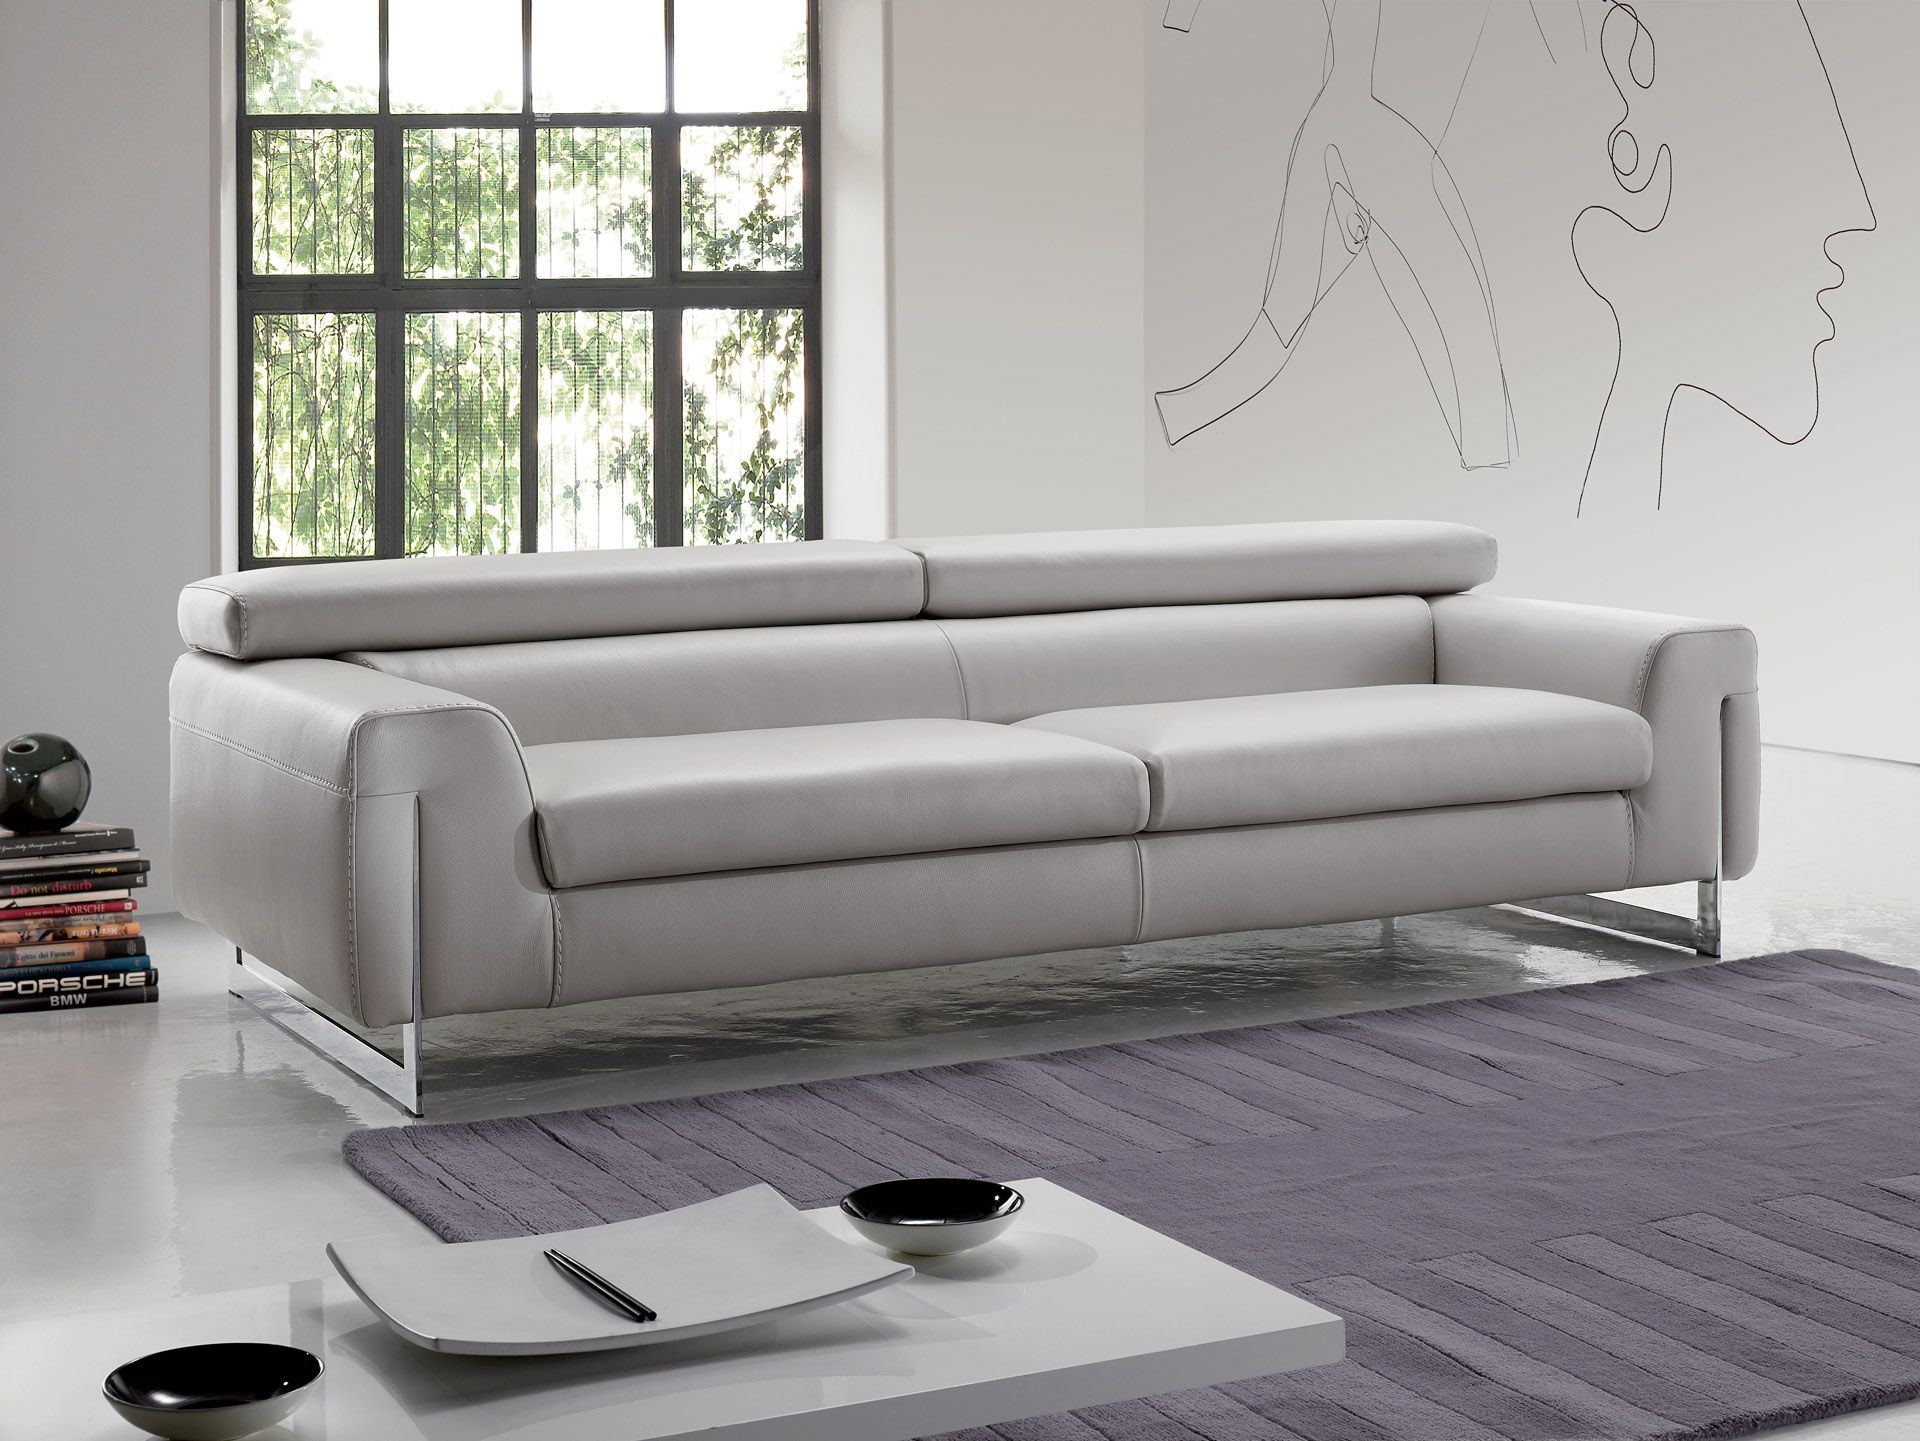 Gamma bellevue room furniture design sofa furniture sofa chair contemporary furniture stores